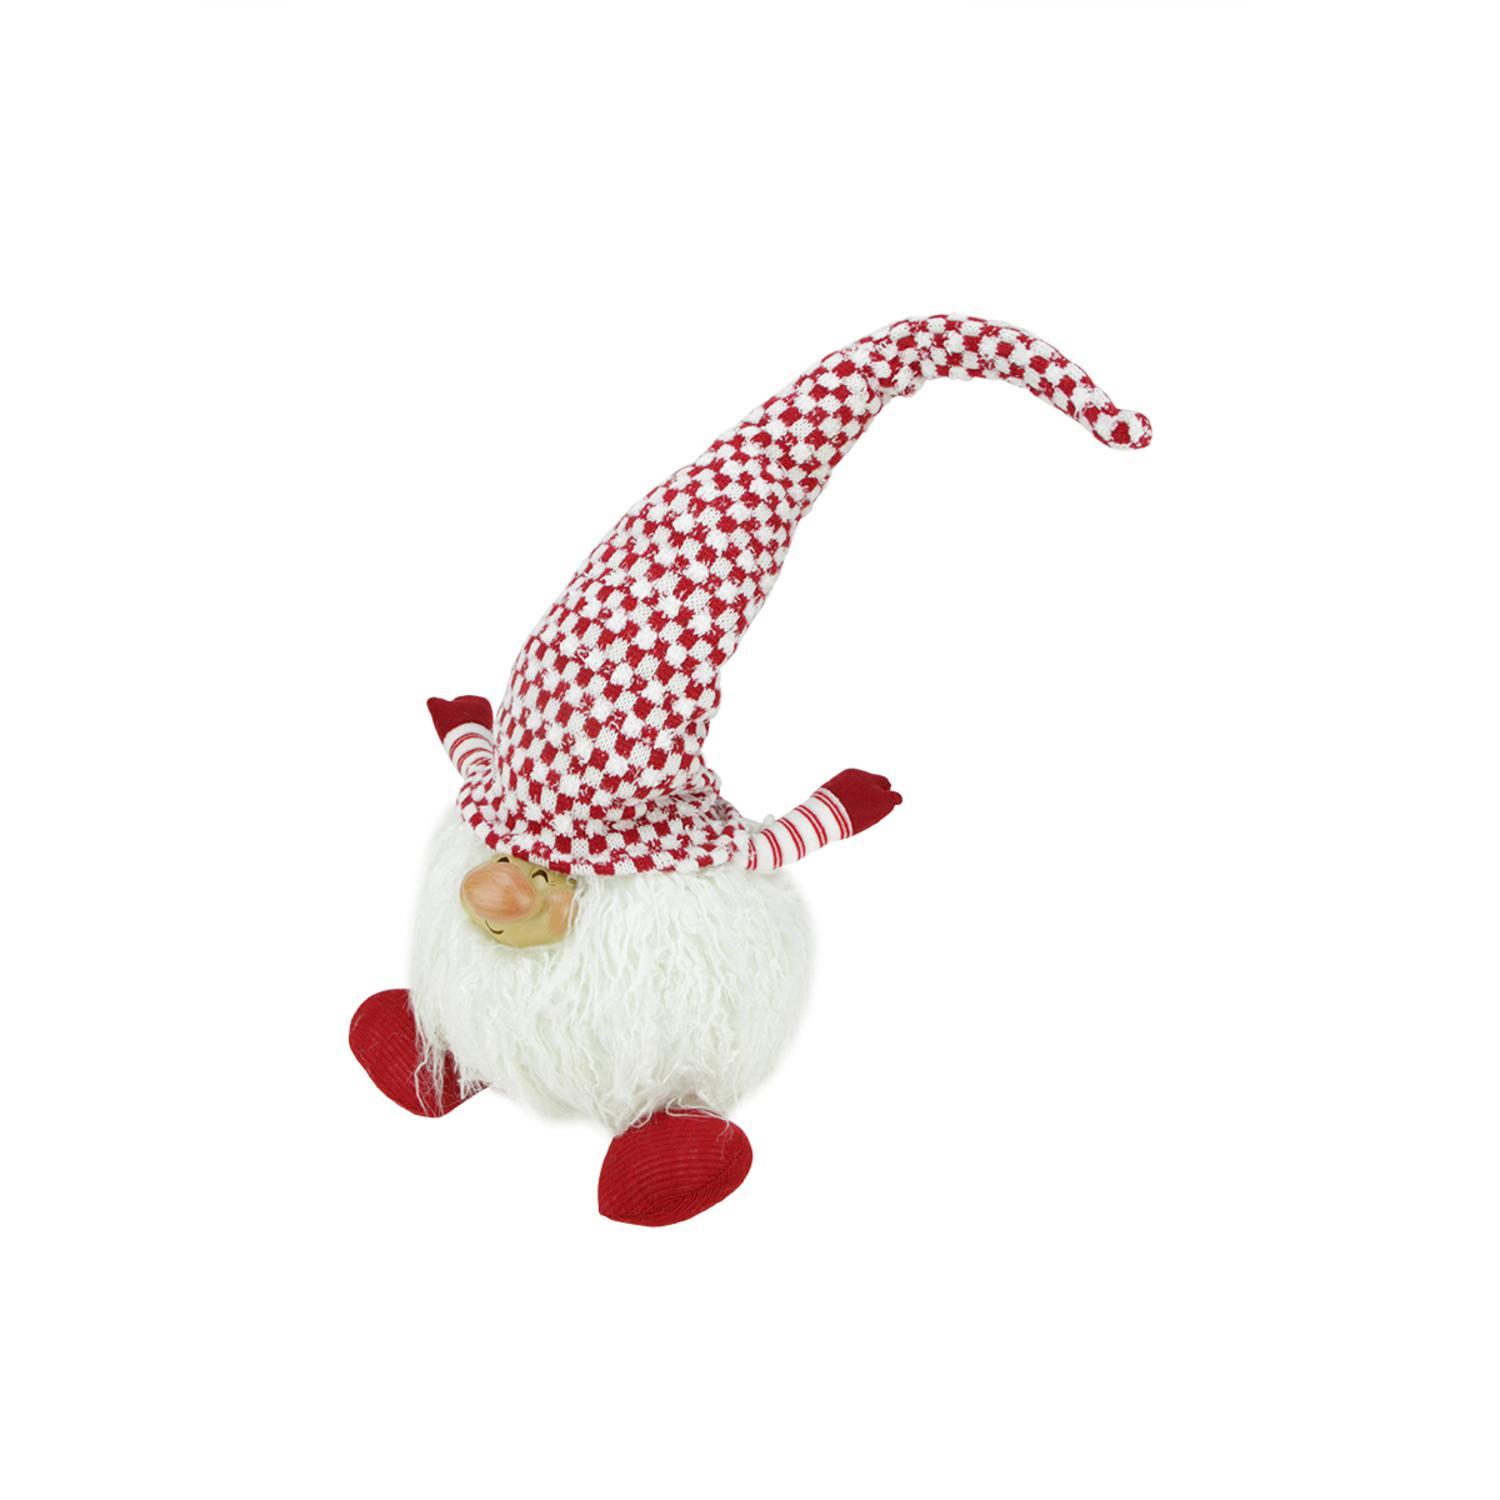 ''12'''' RED and White ''''Cheerful Charlie'''' Sitting Chubby Santa Gnome Table Top Christmas Figure''